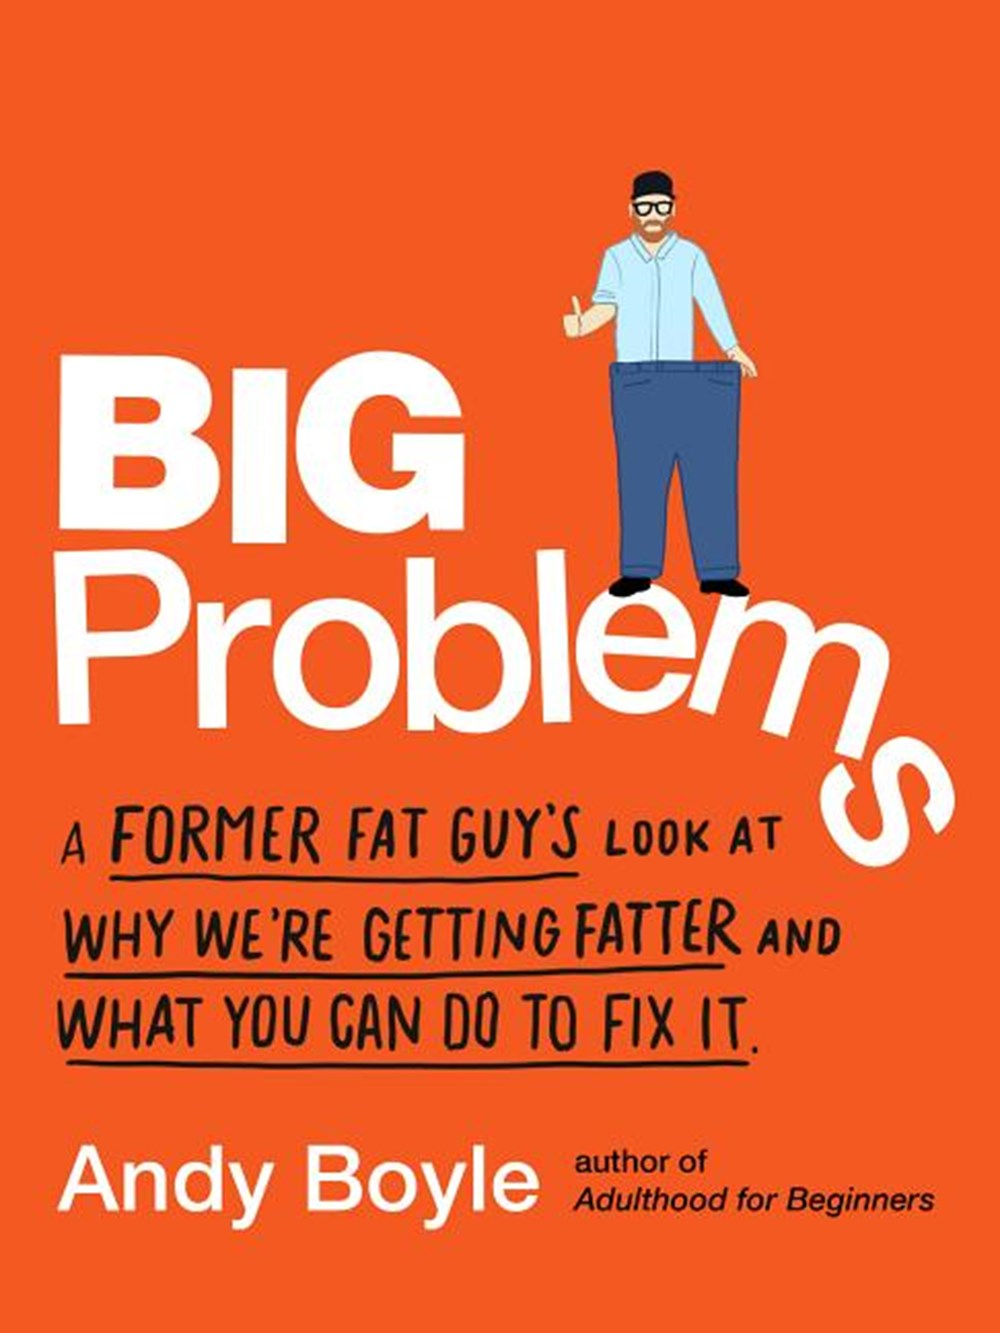 Big Problems A Former Fat Guy's Look at Why We're Getting Fatter and What You Can Do to Fix It